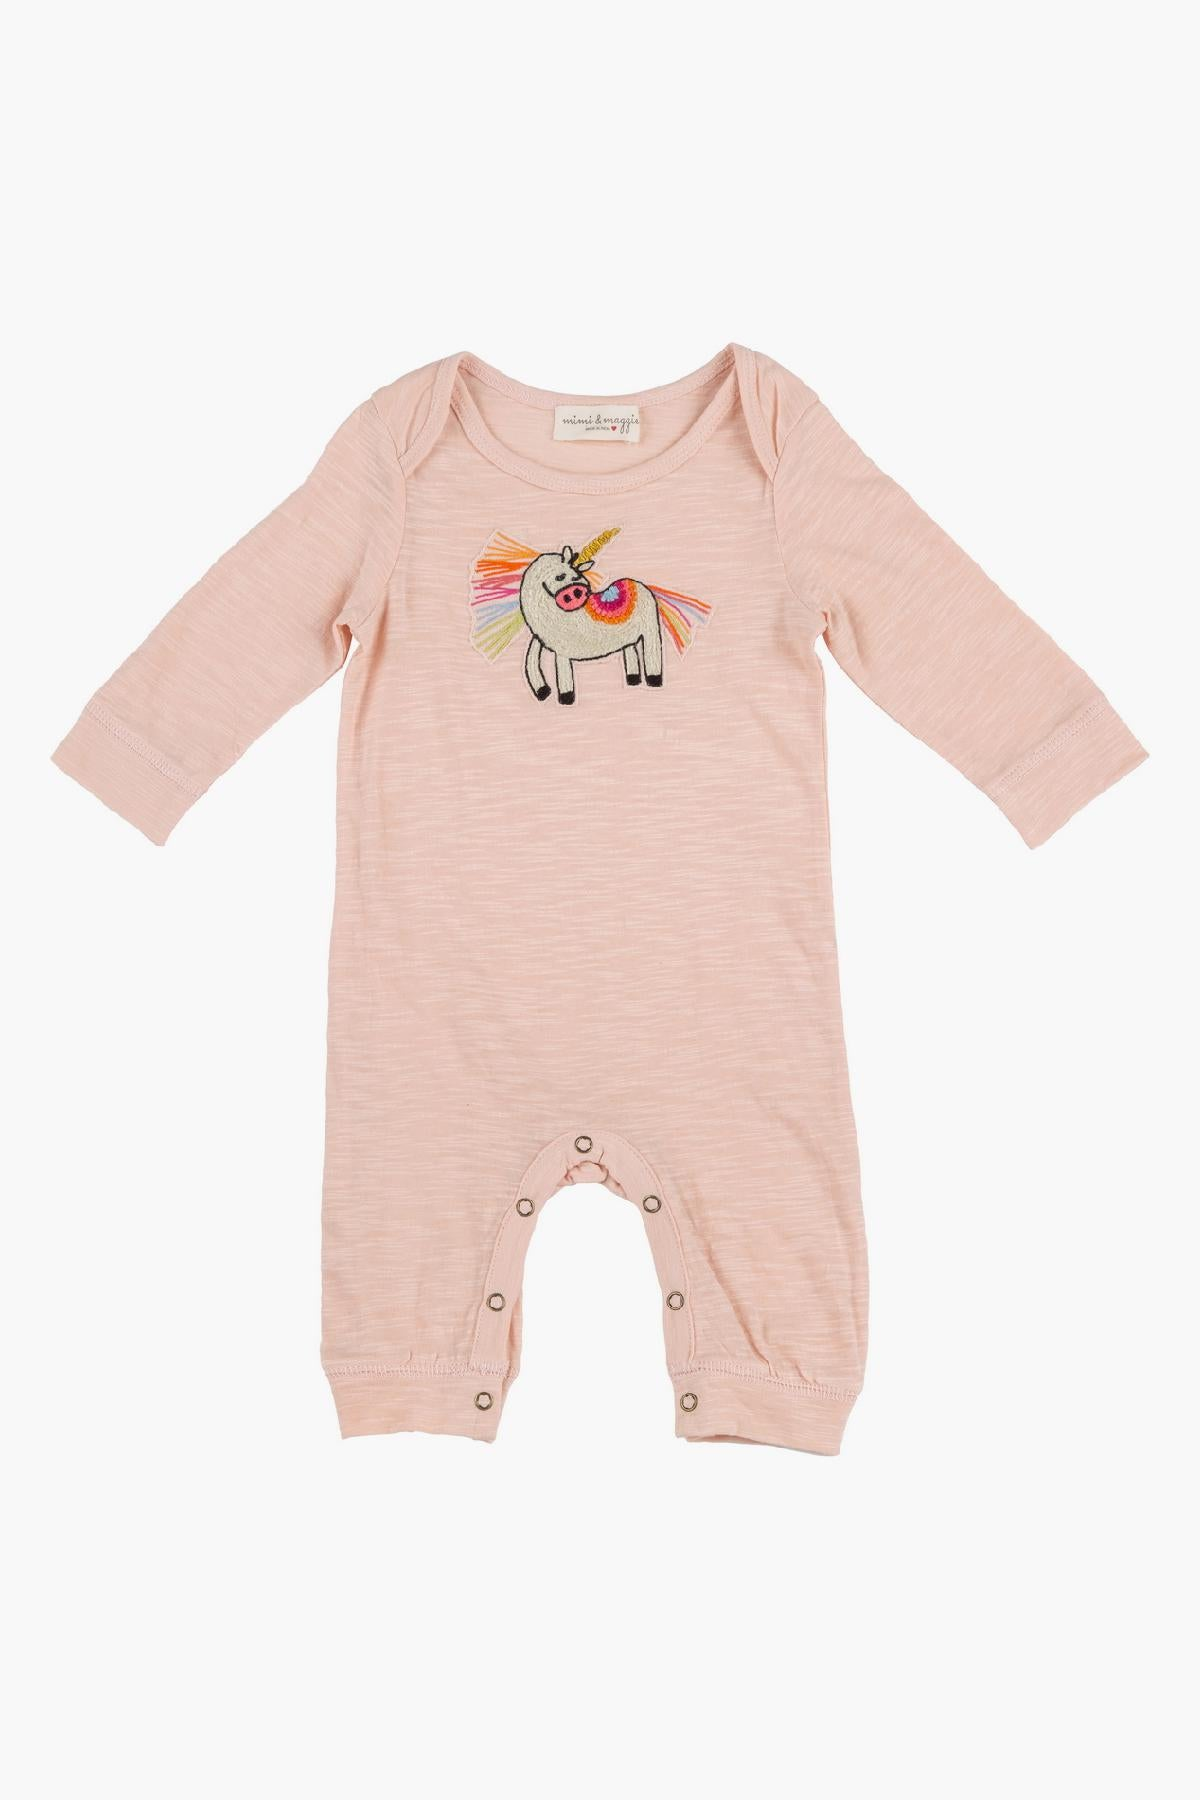 Mimi and Maggie Magical Unicorn Onesie